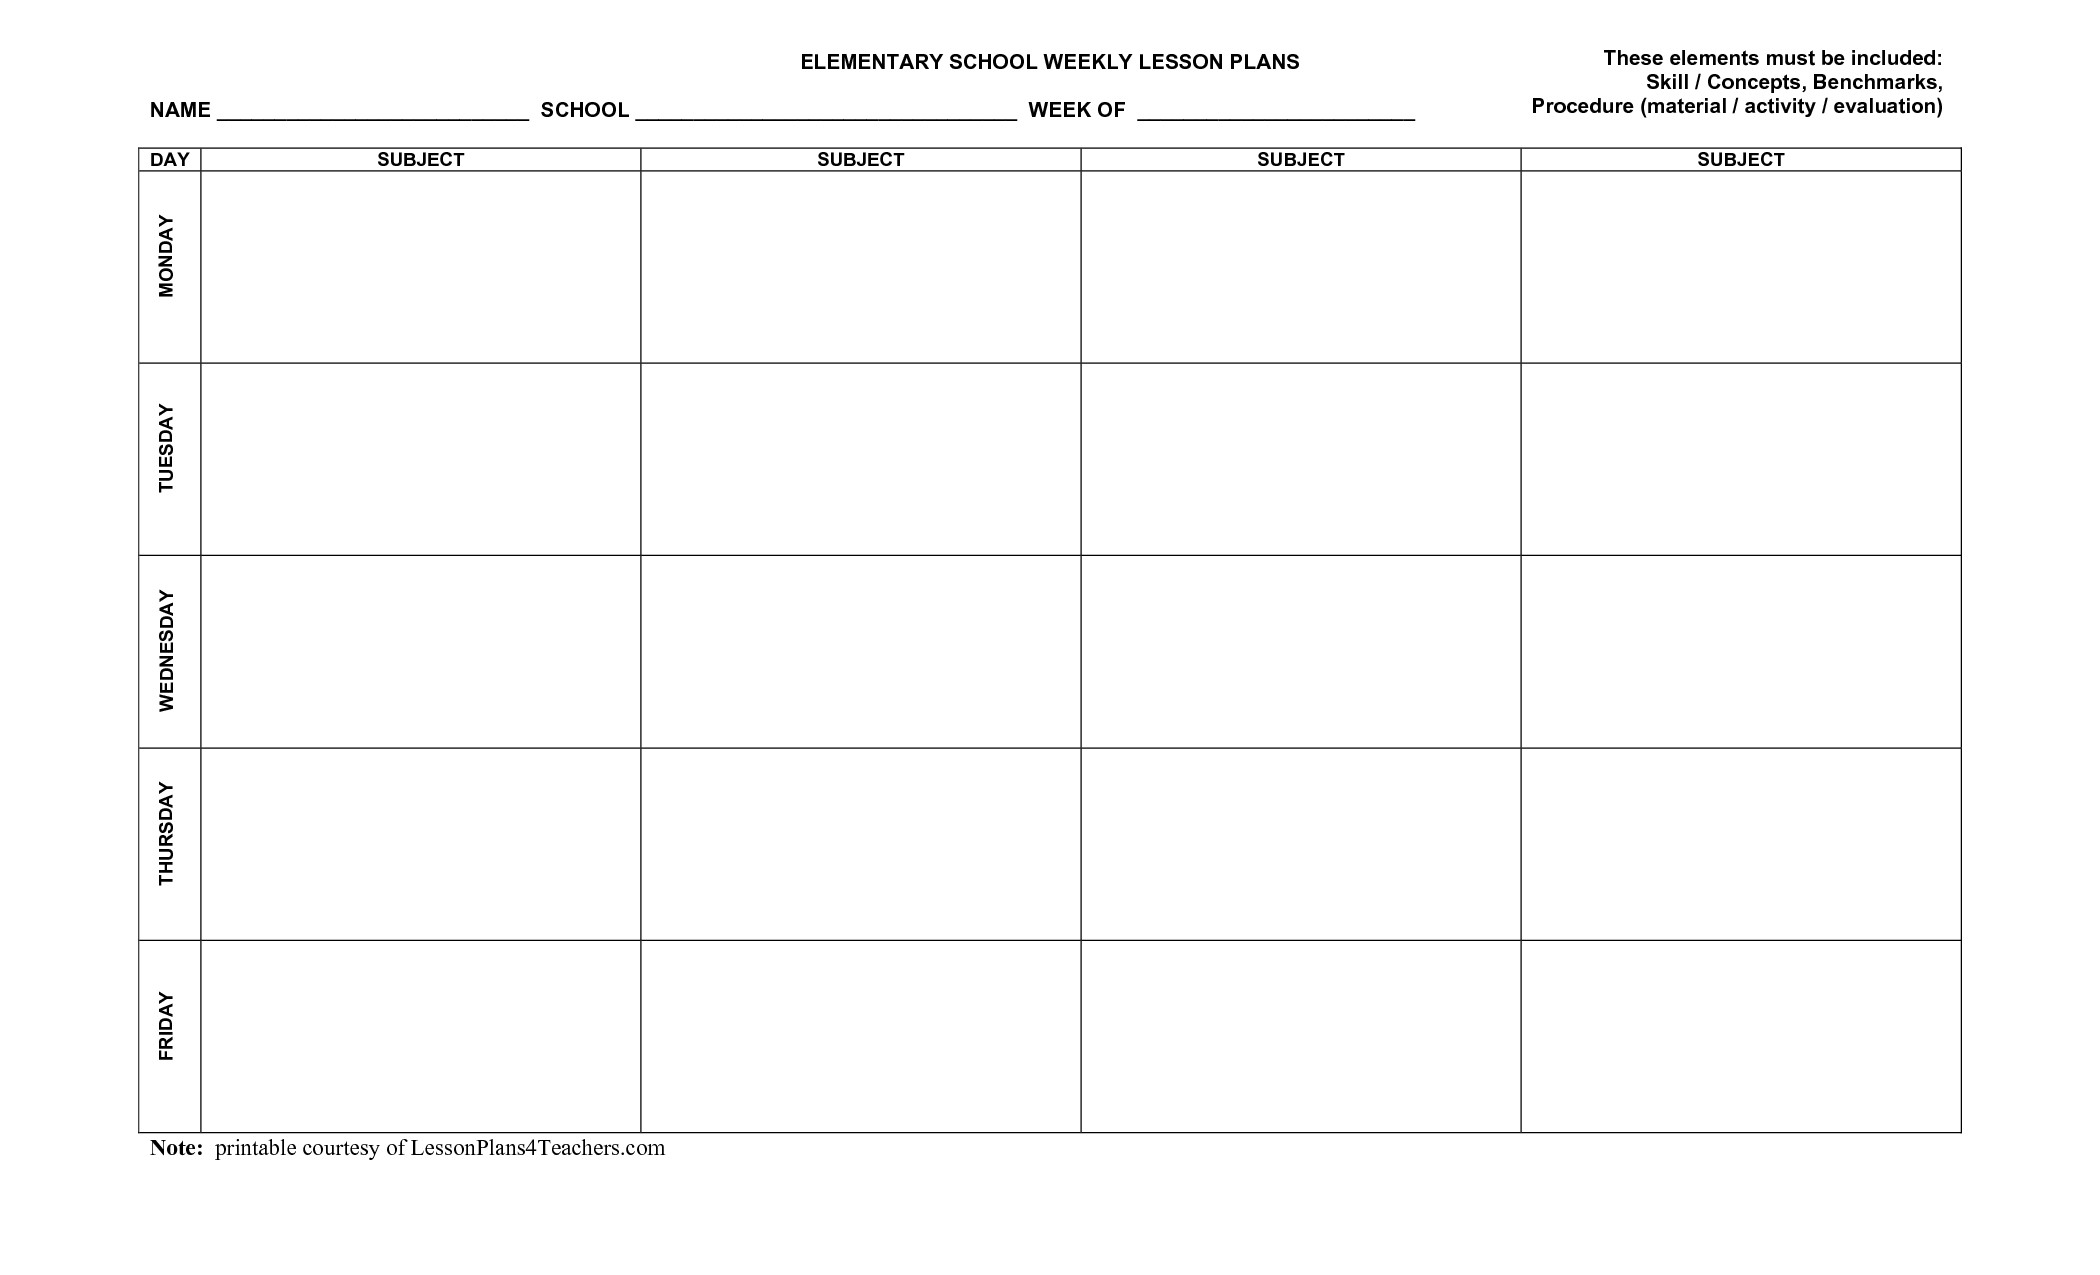 Blank Weekly Lesson Plan Template Blank Weekly Lesson Plan Templates Mqfotfas